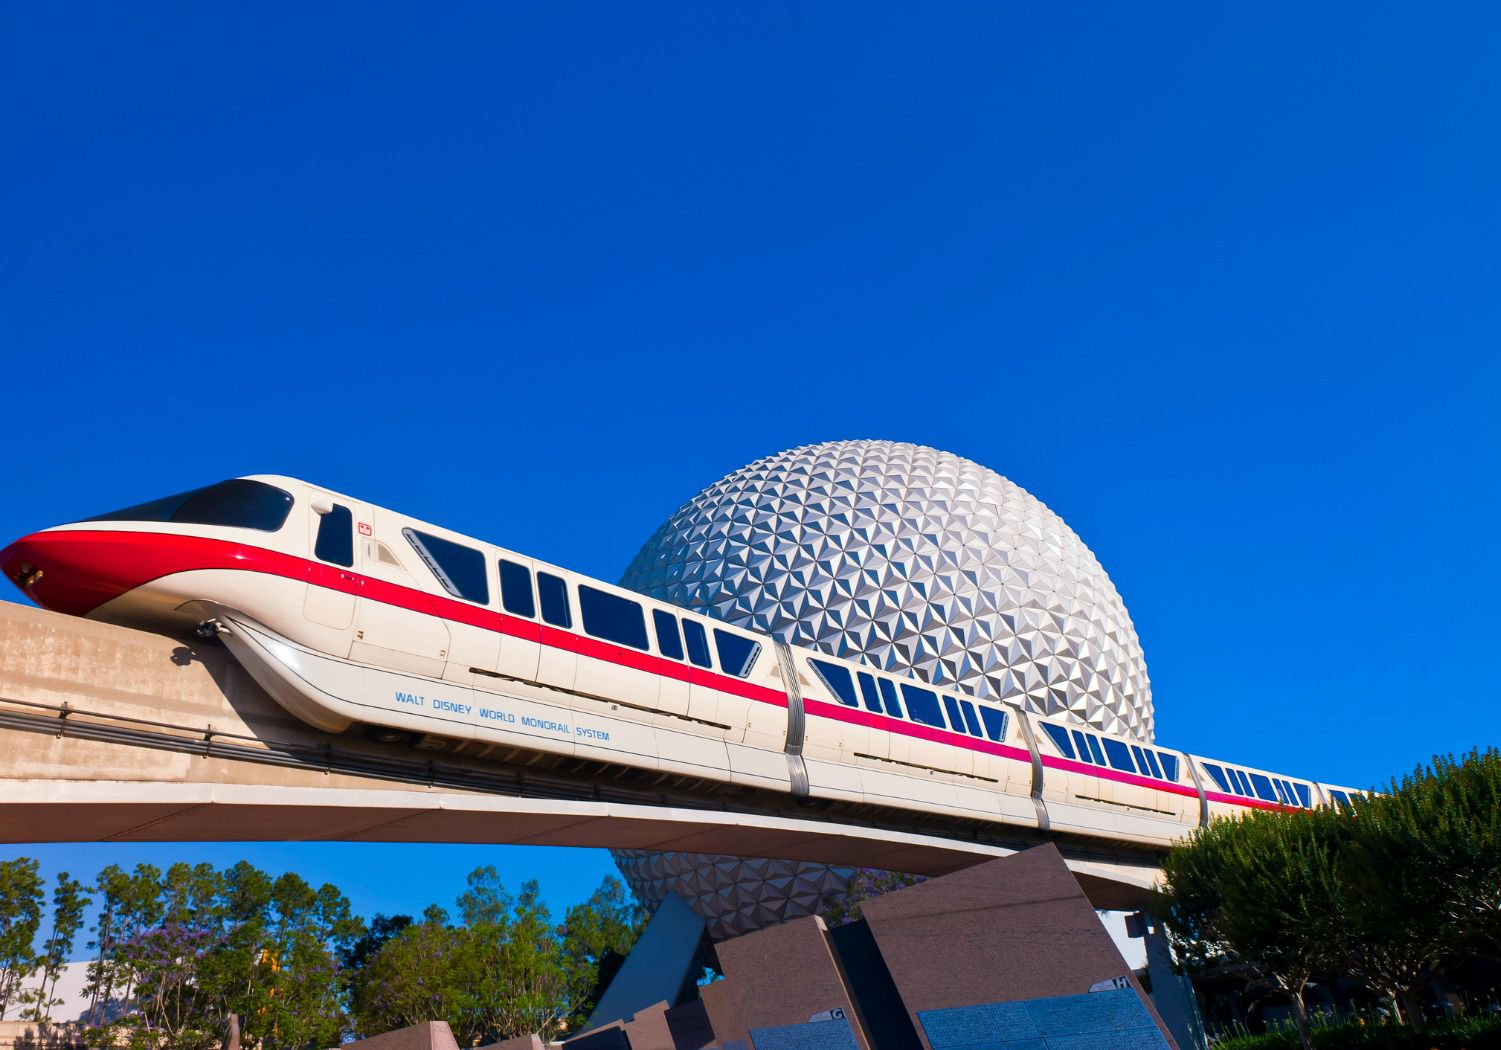 The Ultimate Guide To Disney World Transportation